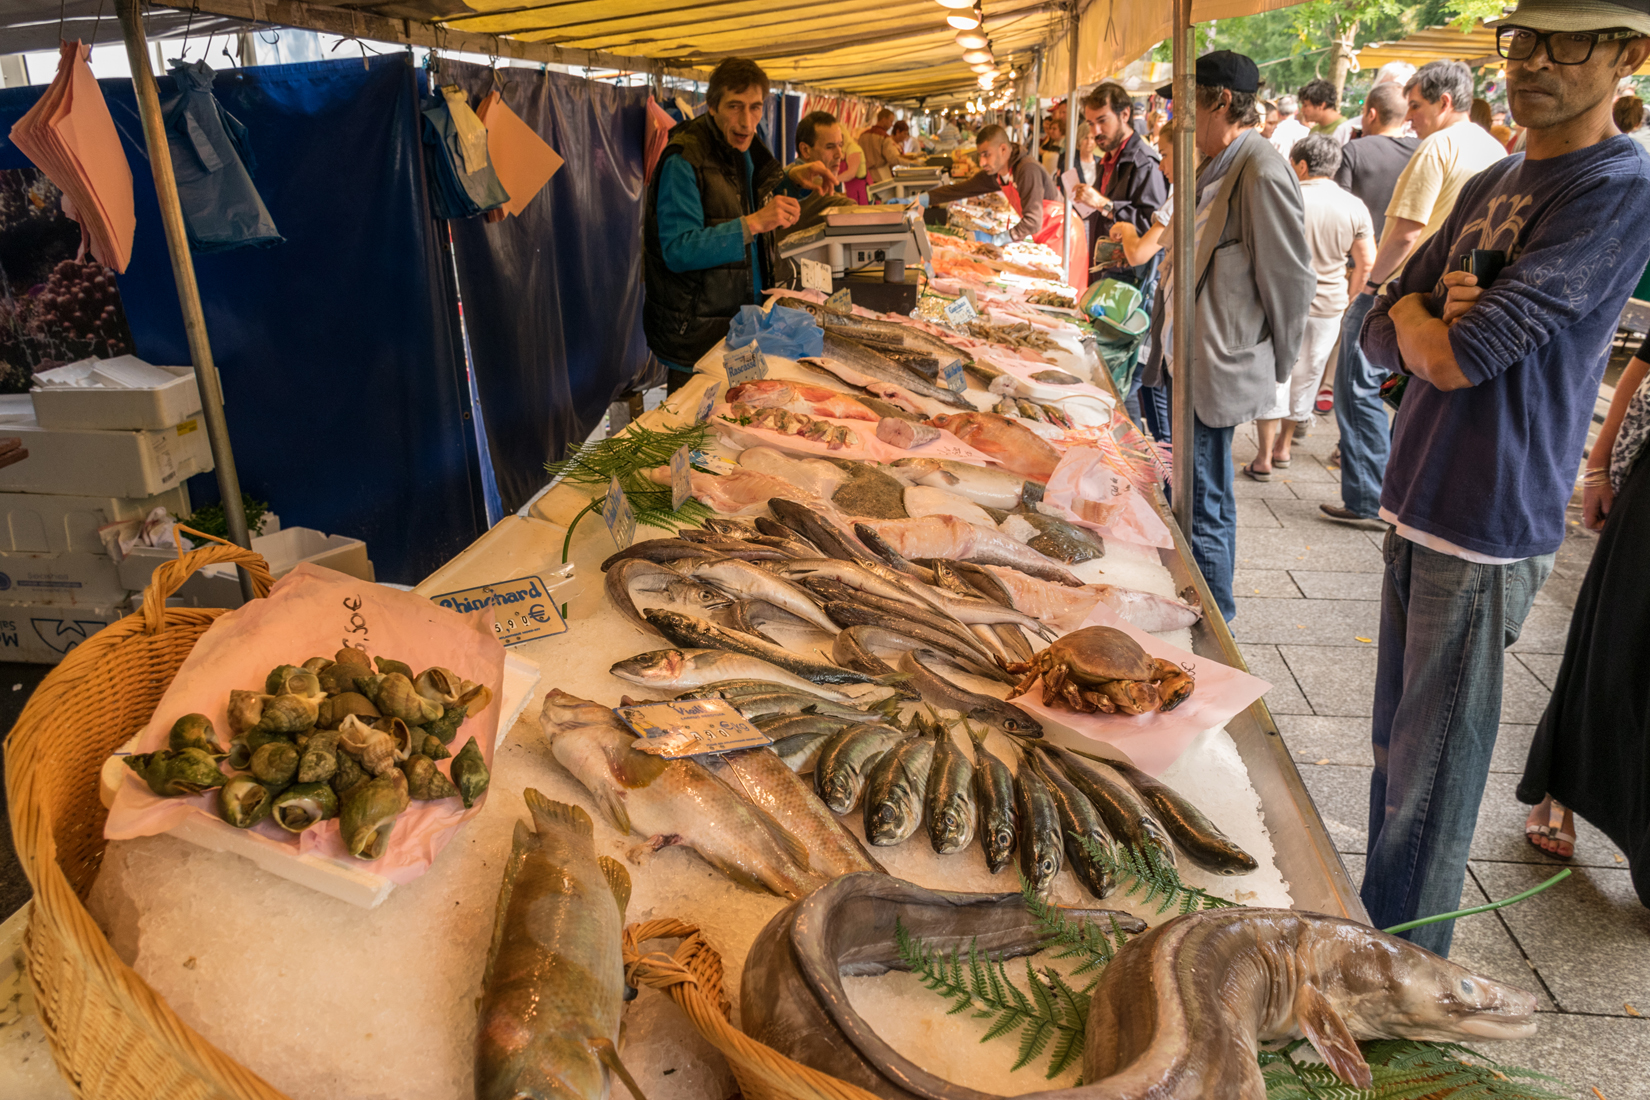 The mid-morning sun is already beginning to fall on this display of fresh fish on ice